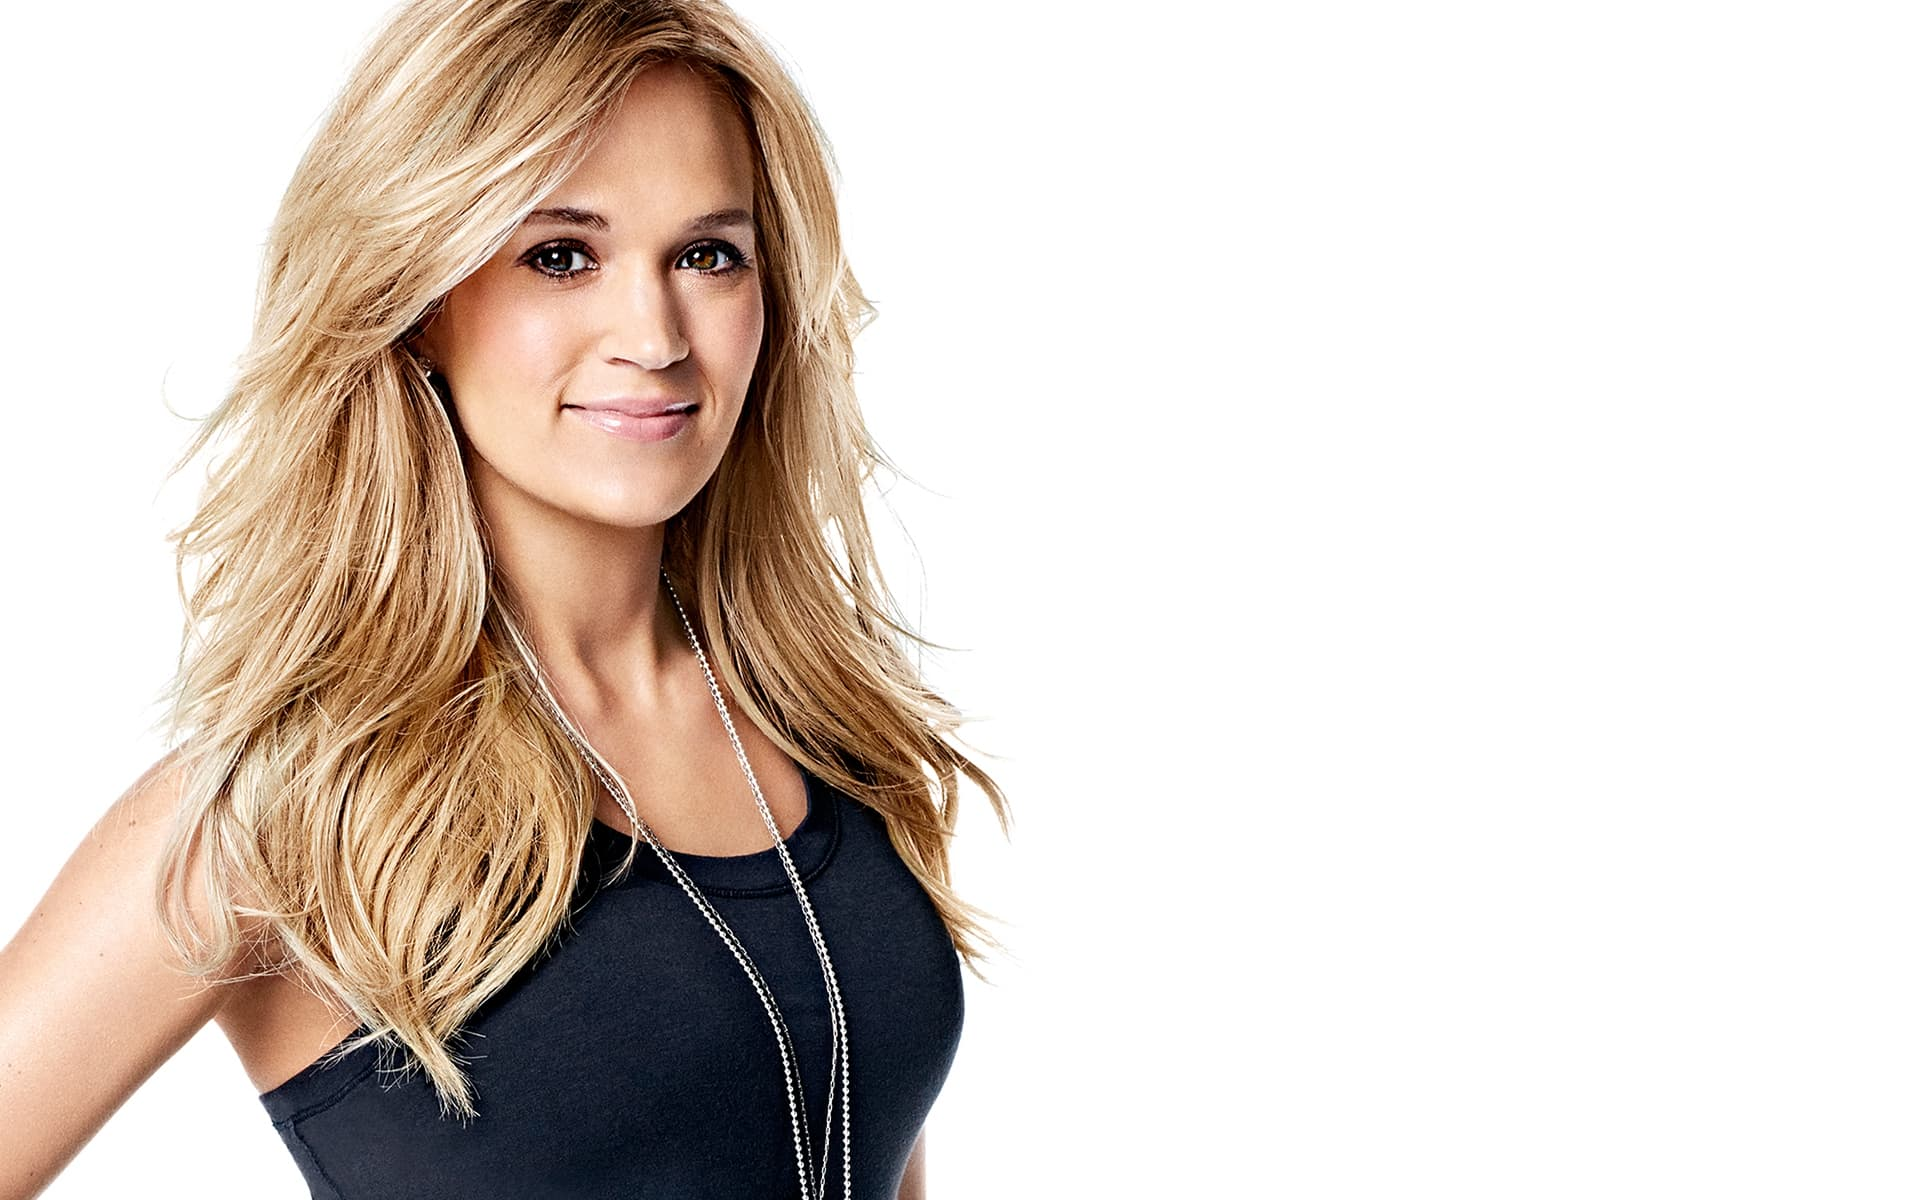 Carrie Underwood Wallpaper white